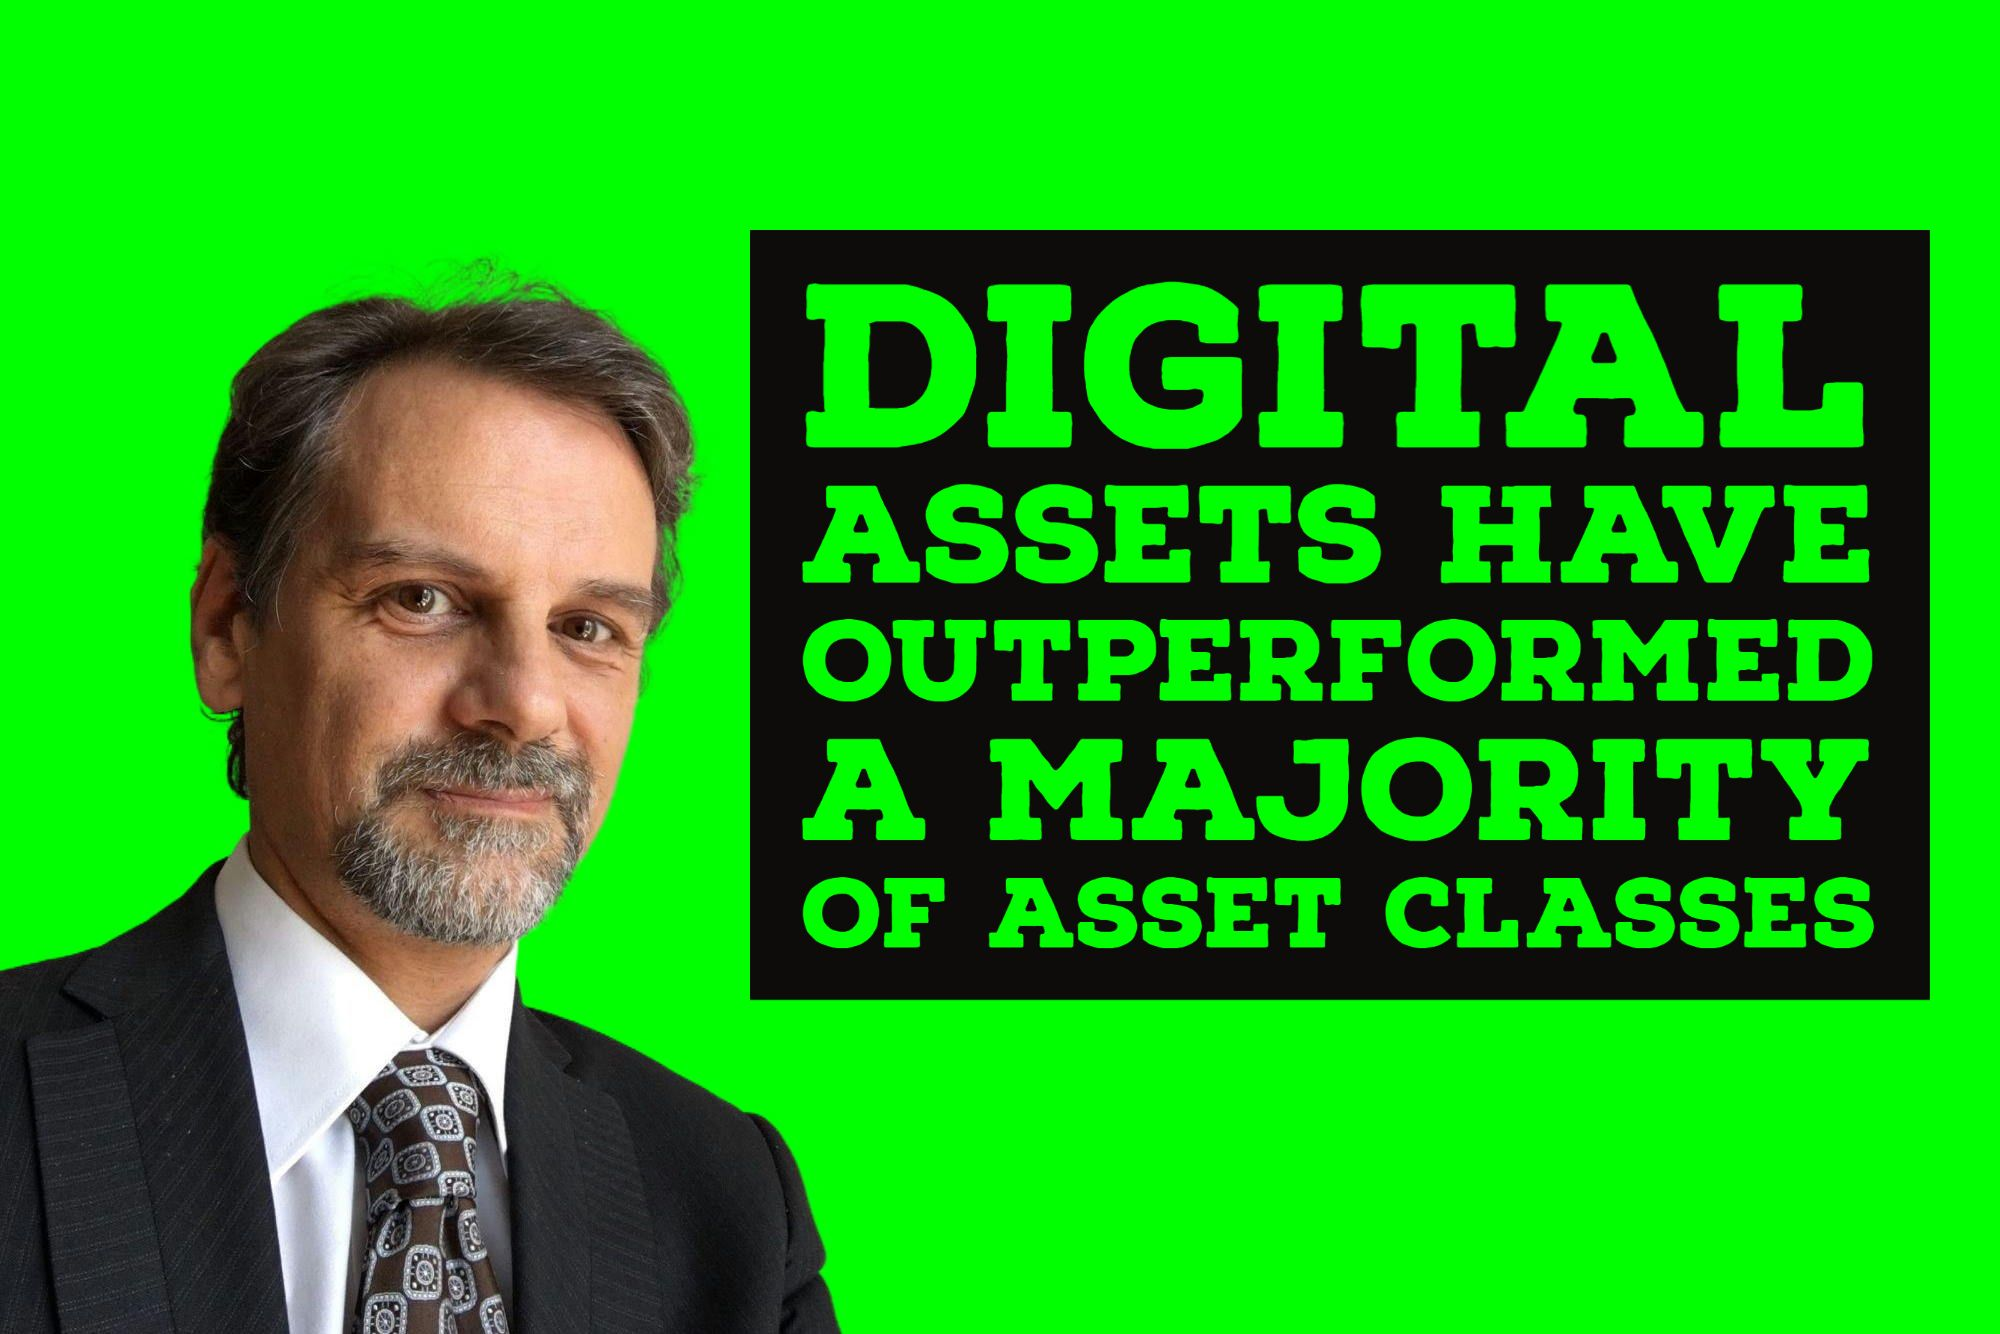 /digital-assets-have-outperformed-a-majority-of-asset-classes-marco-mottana-ywr3w8n feature image